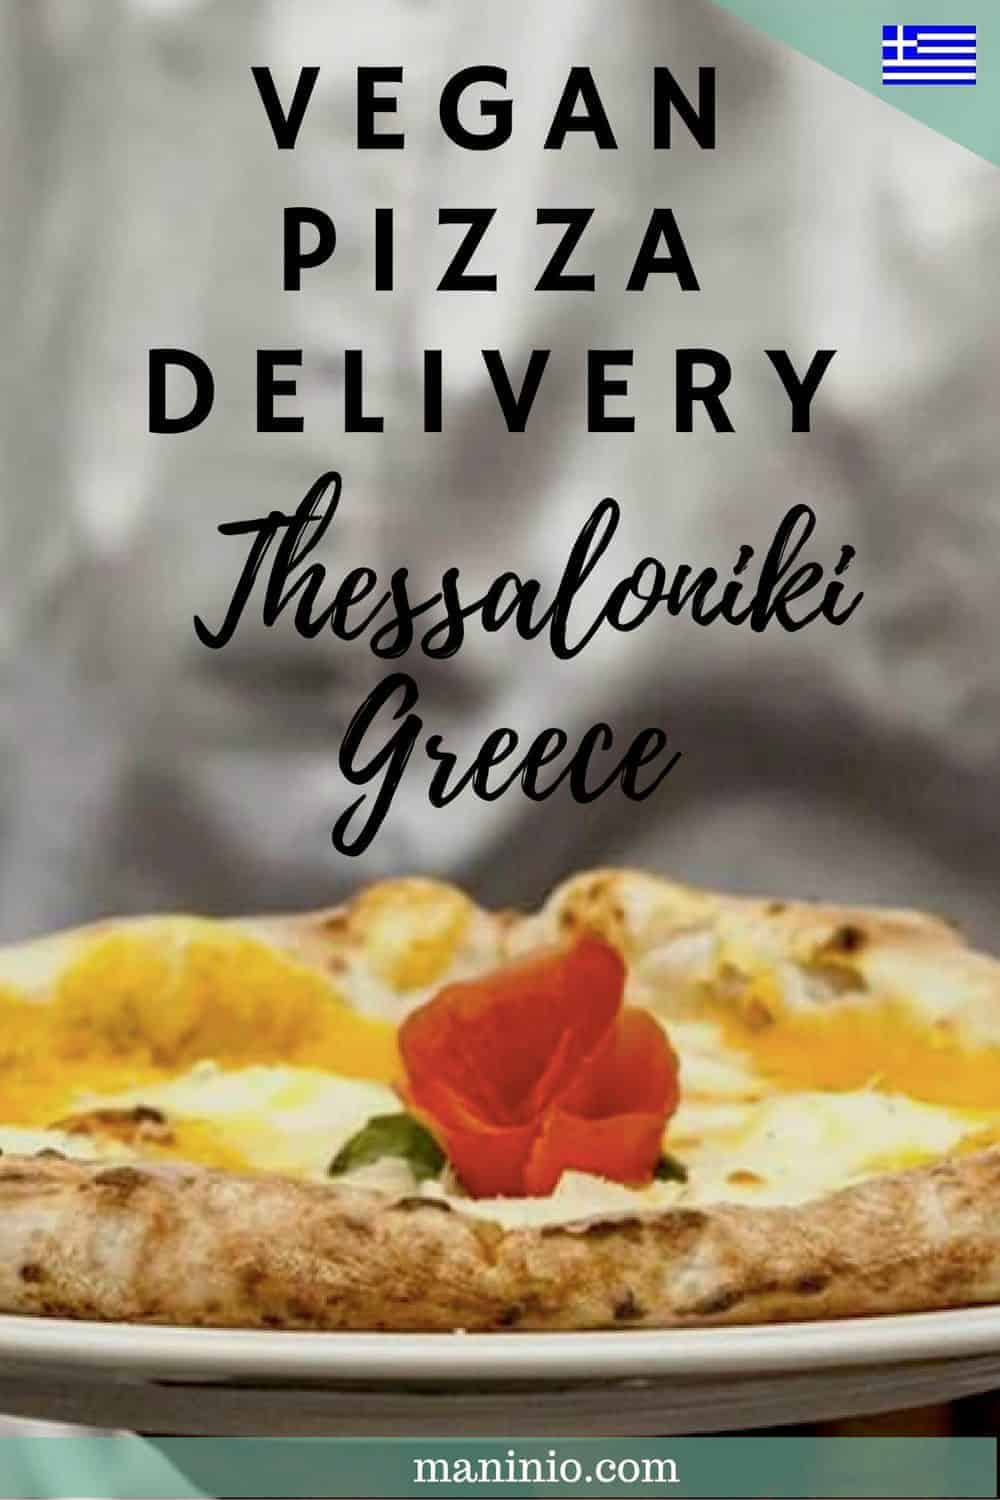 Vegan Pizza Delivery in Thessaloniki - Greece. maninio.com #vegandelivery #veganingreece